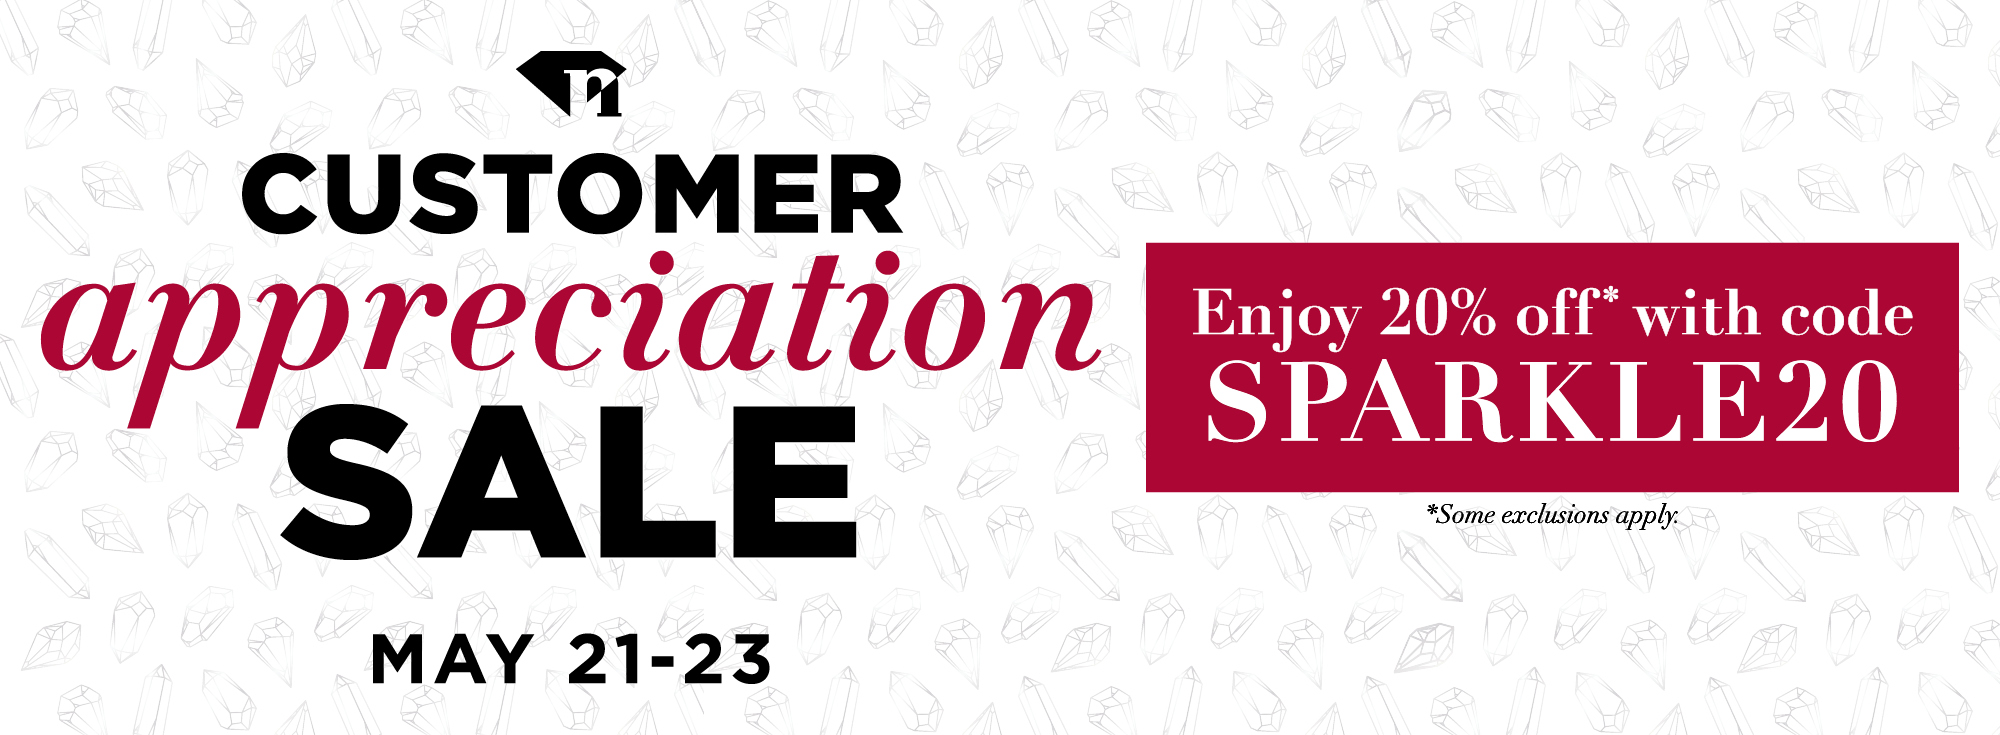 Customer Appreciation sale. Enjoy 20% off with code SPARKLE20.